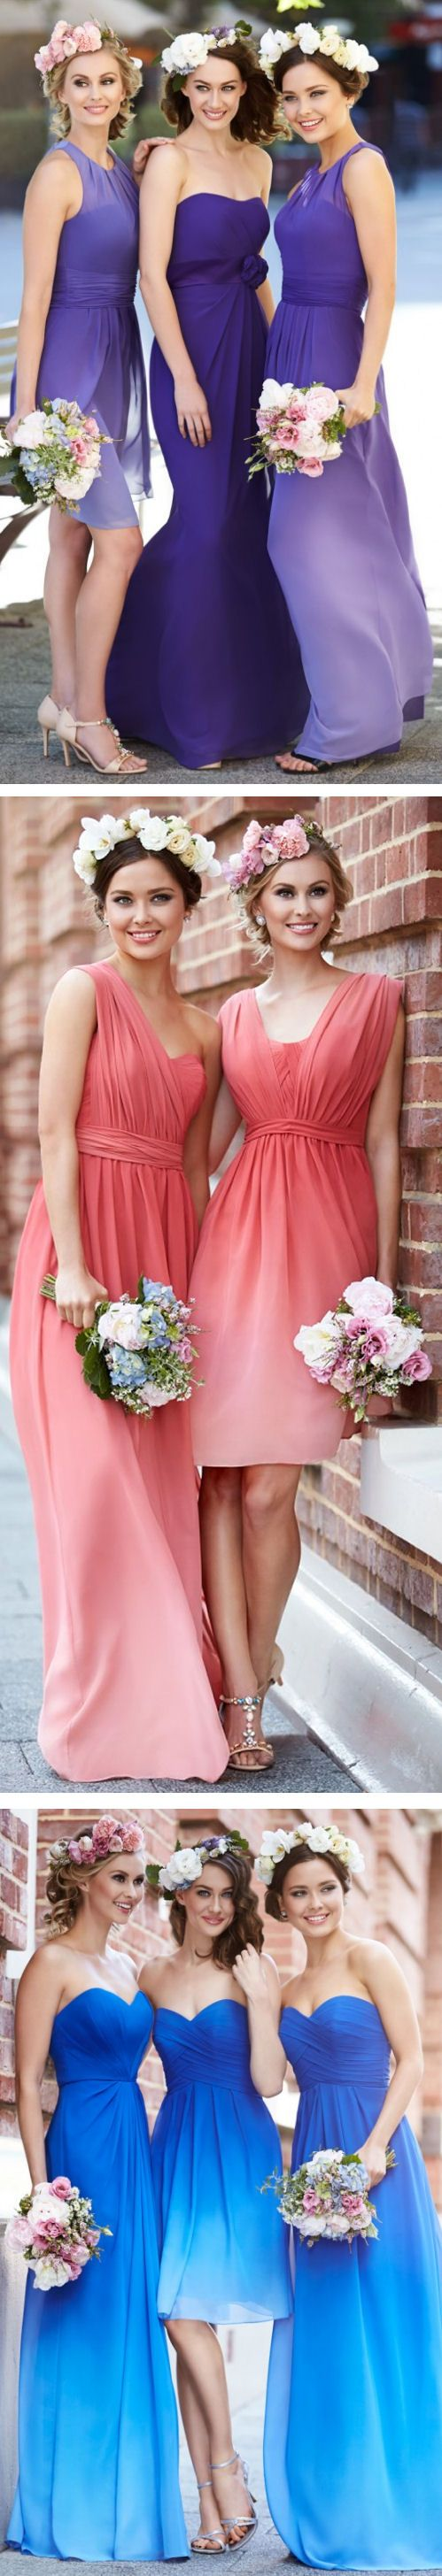 Ombre Bridesmaid Dresses ❤︎ #bridesmaid #wedding #dress